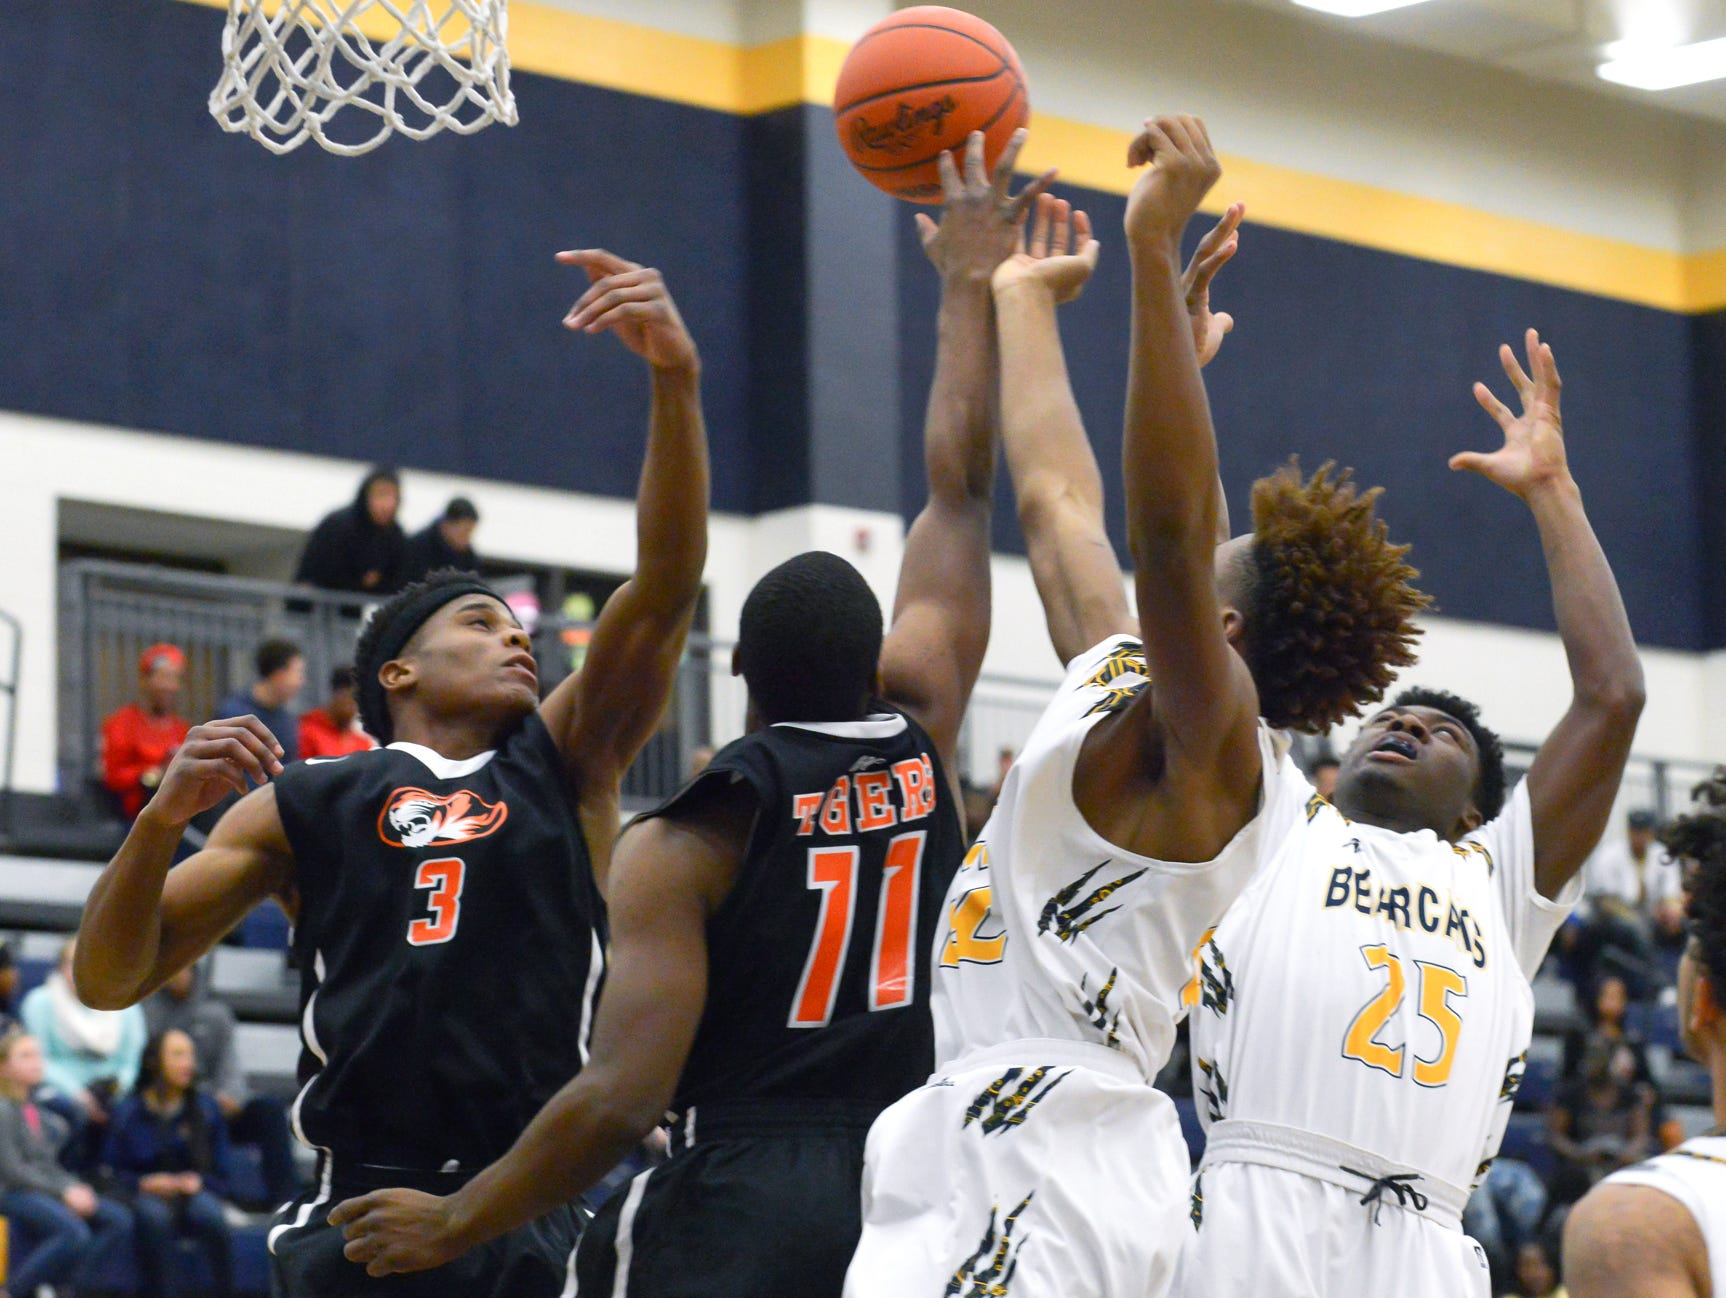 BC Central and Benton Harbor Tigers battle for a rebound early in the first period Tuesday night.